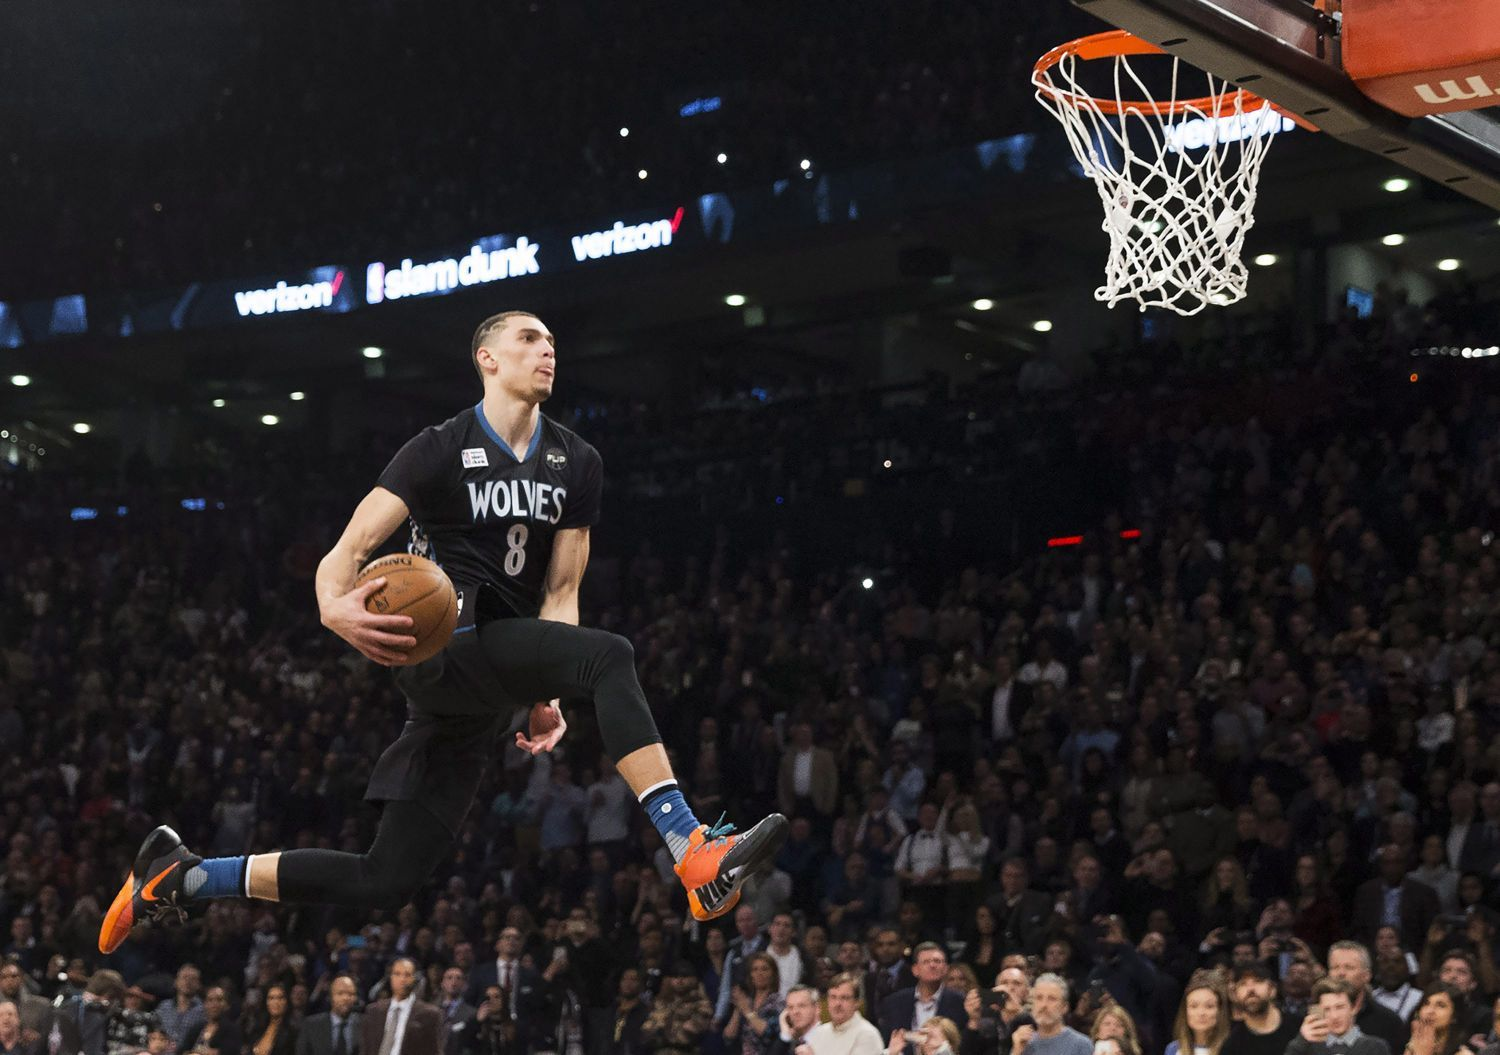 The Timberwolves were awesome at NBA All-Star Weekend